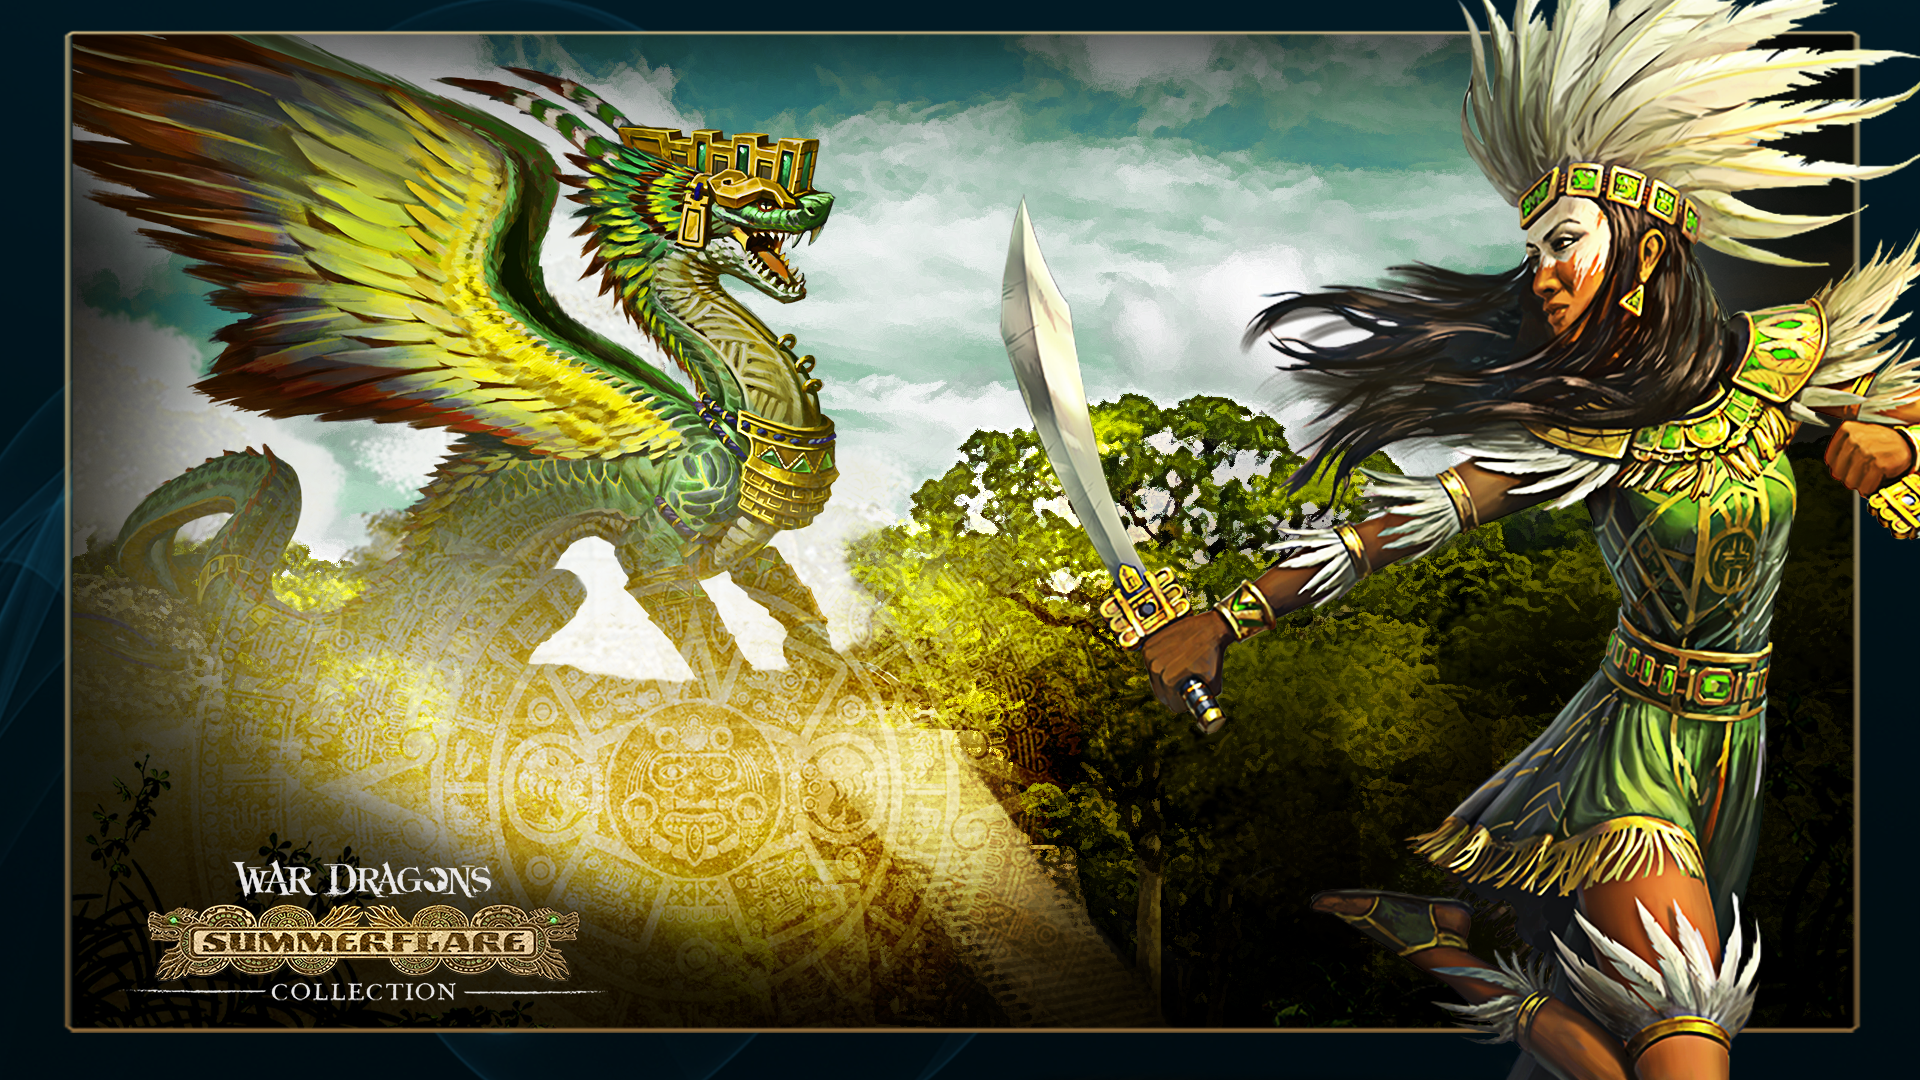 War dragons desktop and mobile backgrounds off topic - Wallpaper 1600x1024 ...